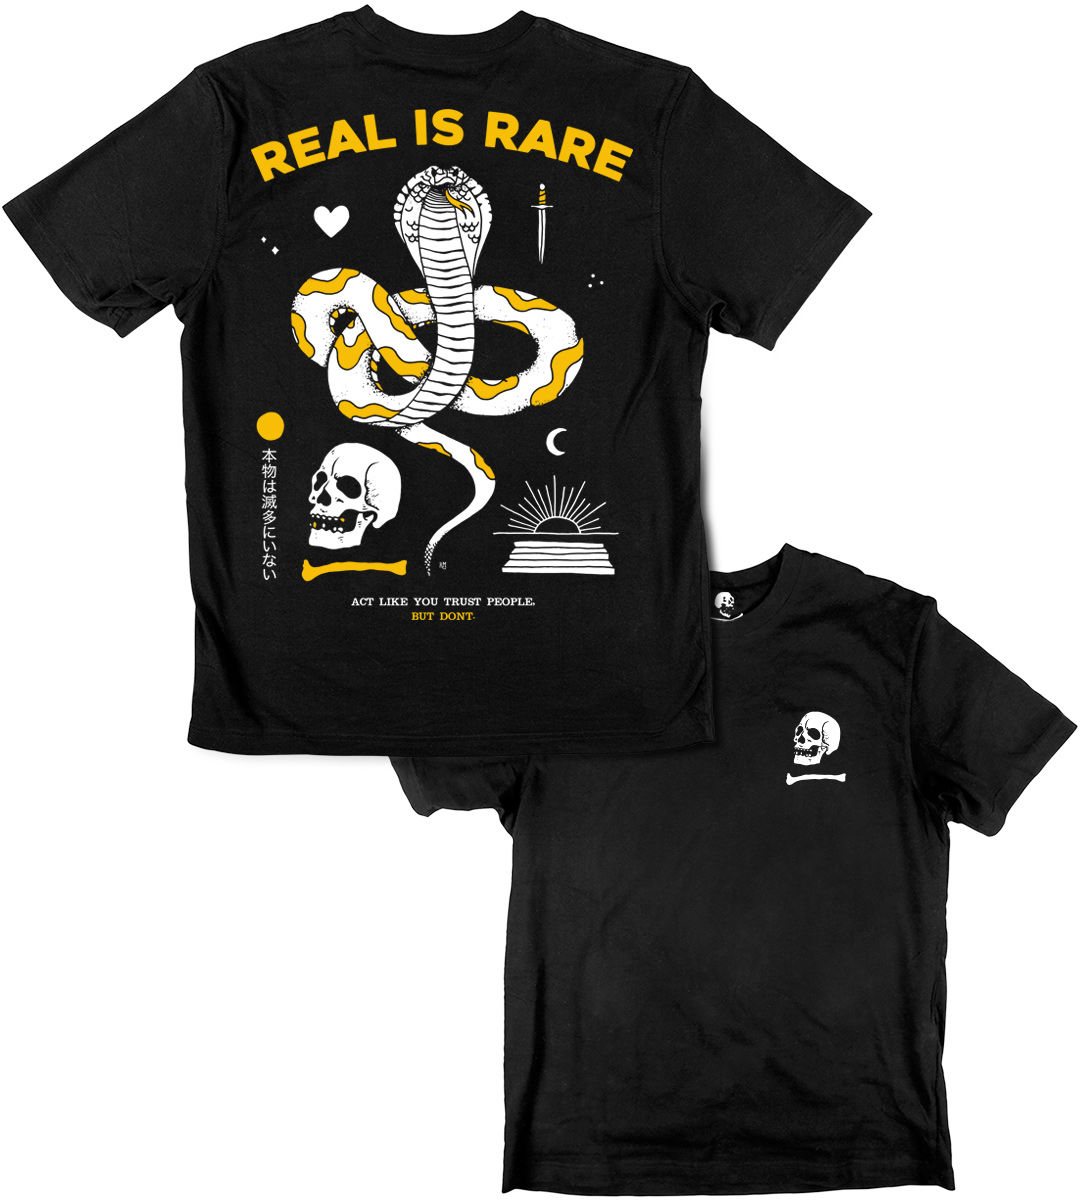 REAL IS RARE - product image